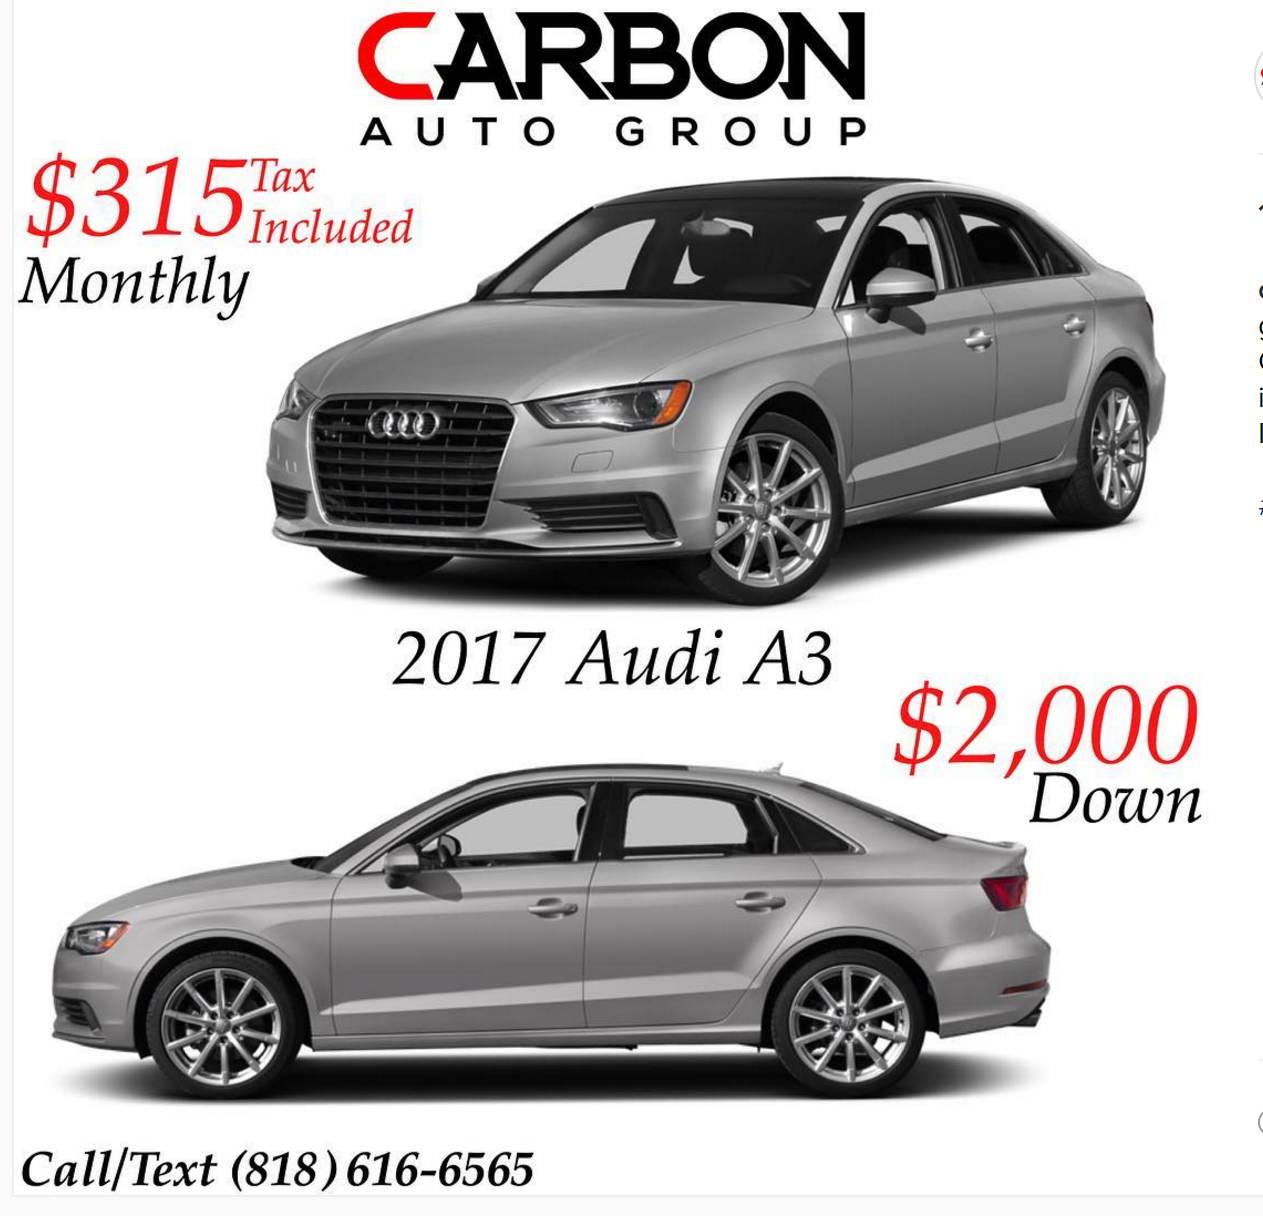 AUDI A Lease Offer From Today Is It Worth Pursuing Ask - Audi a3 lease